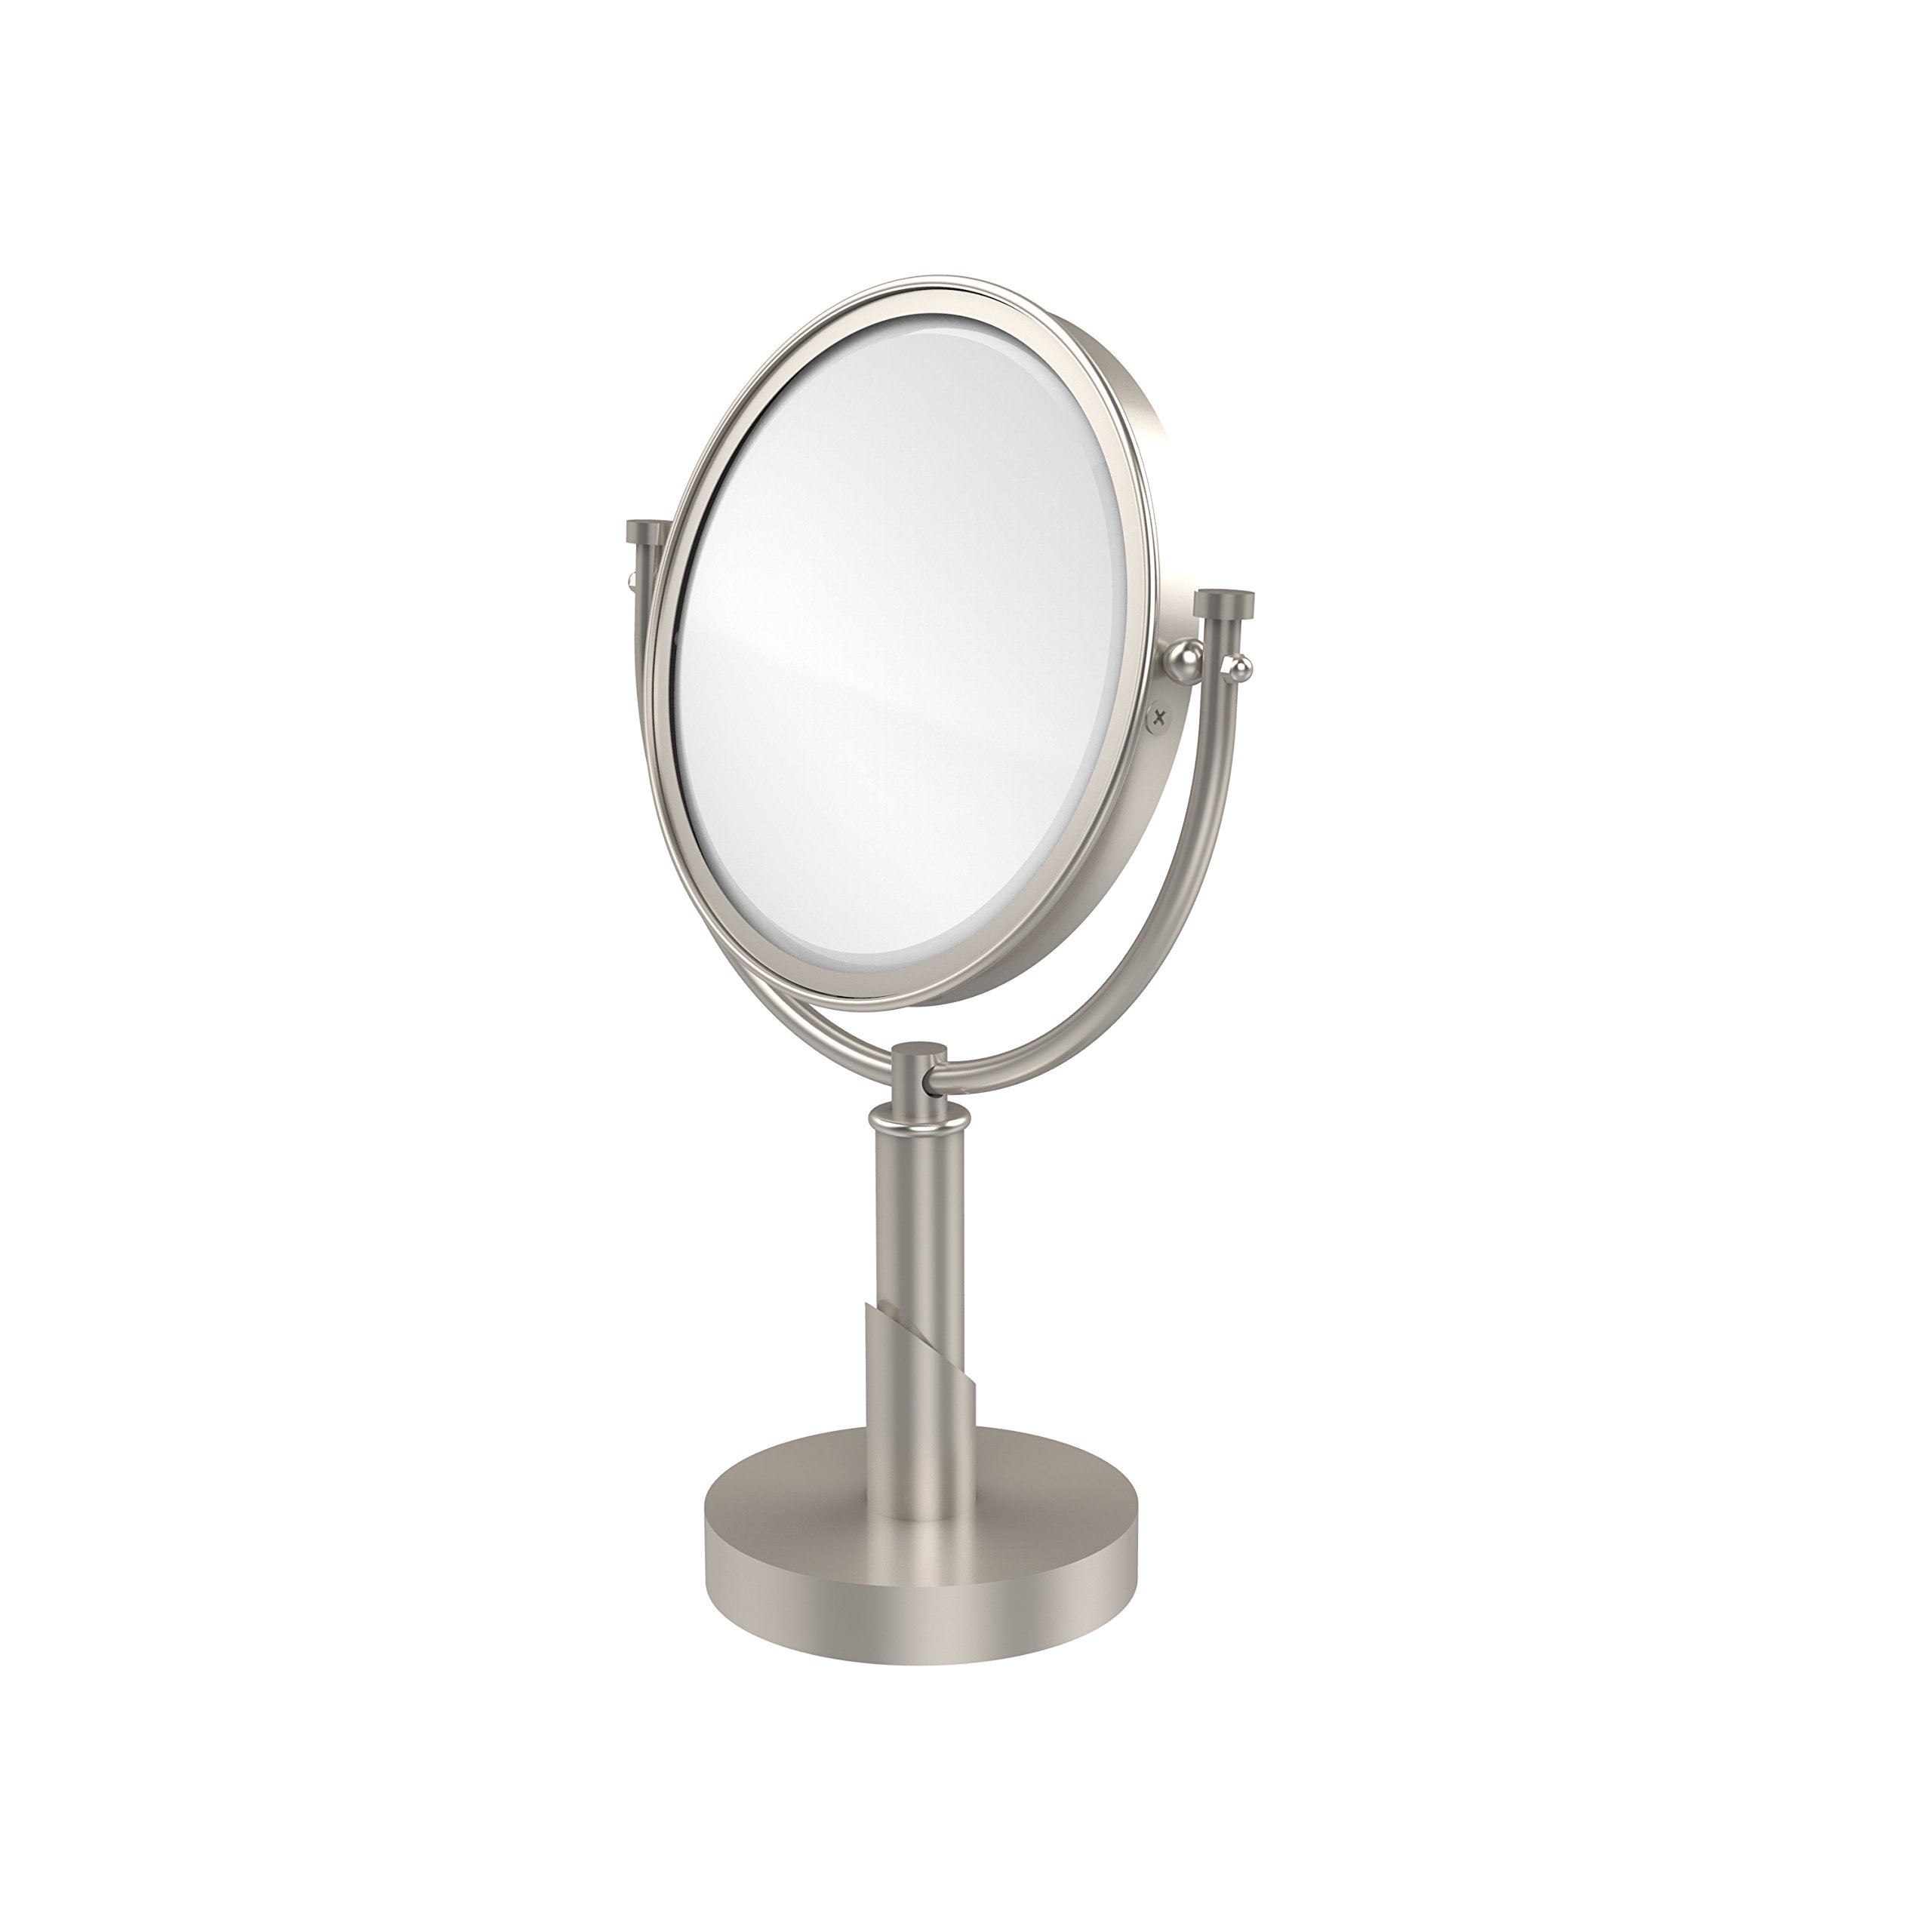 Allied Brass TR-4/5X-SN Table Mirror with 5X Magnification, Satin Nickel